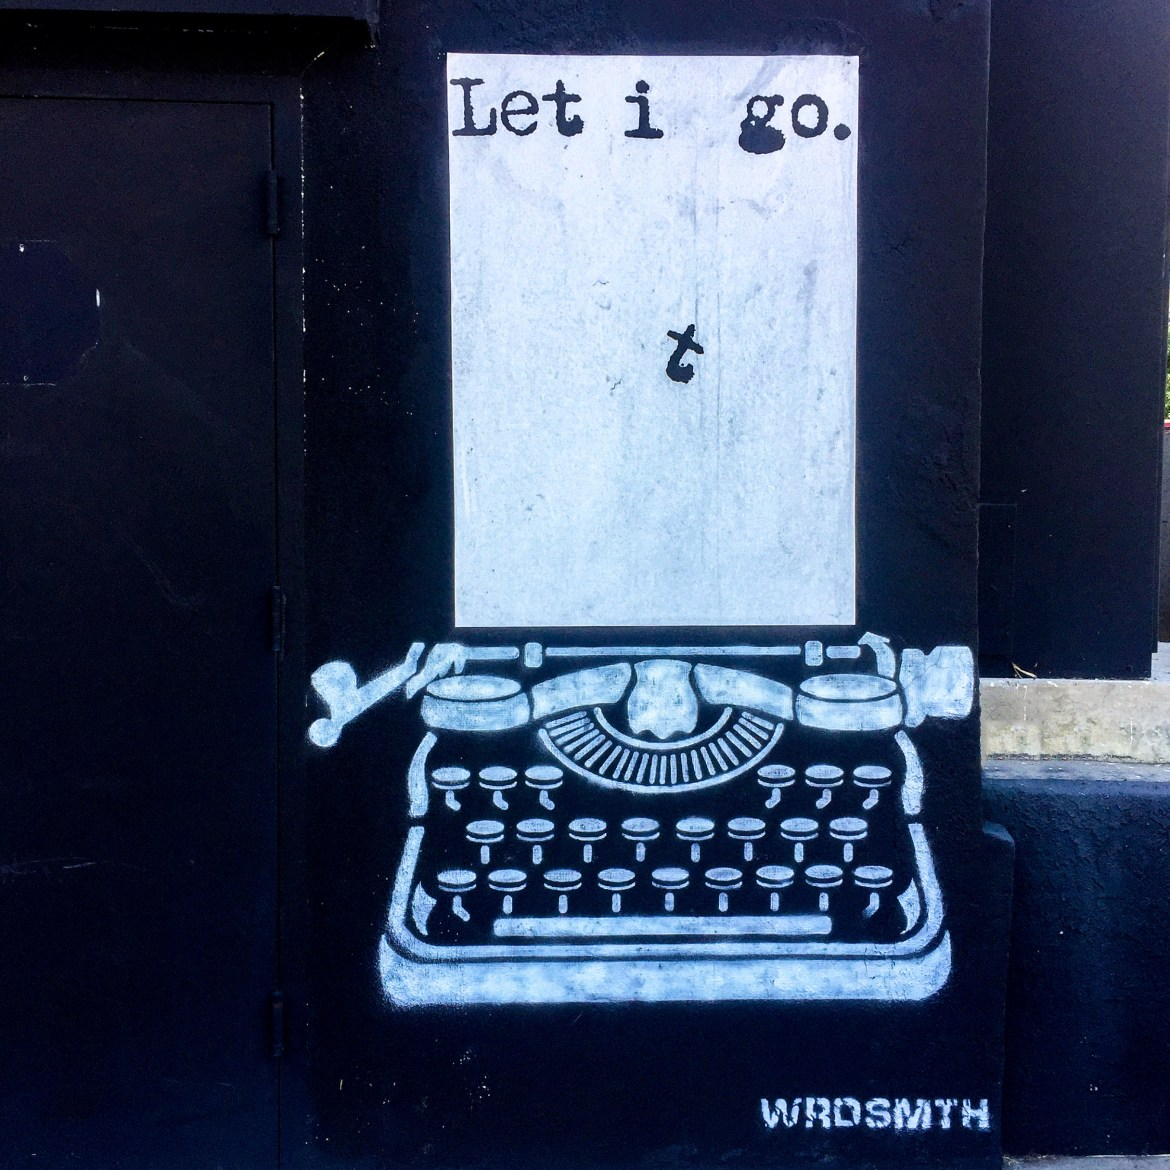 WRDSMTH street art Los Angeles California